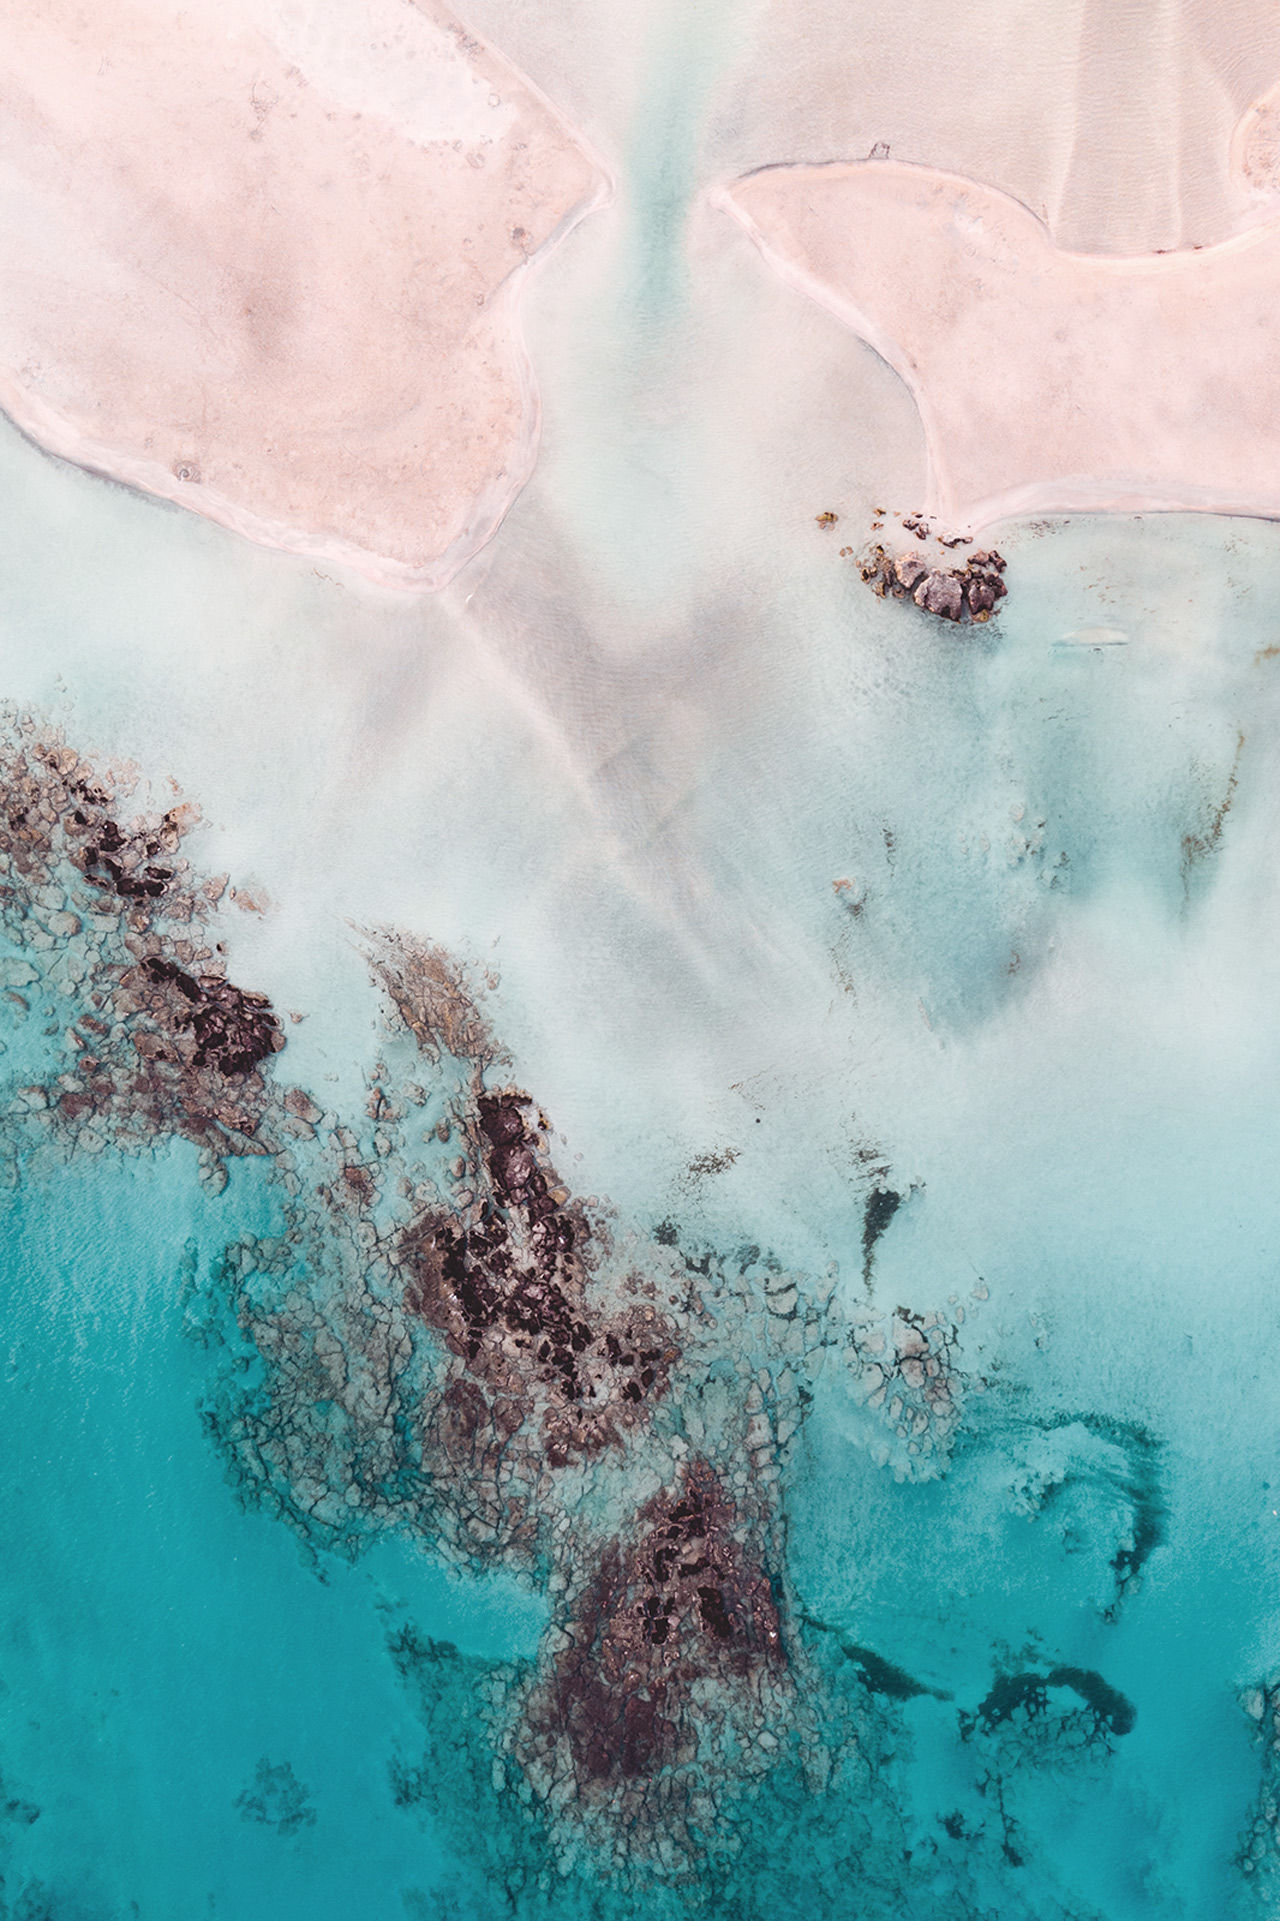 Balos is surrounded by all that white sand and shimmering flecks of pink from crushed shell